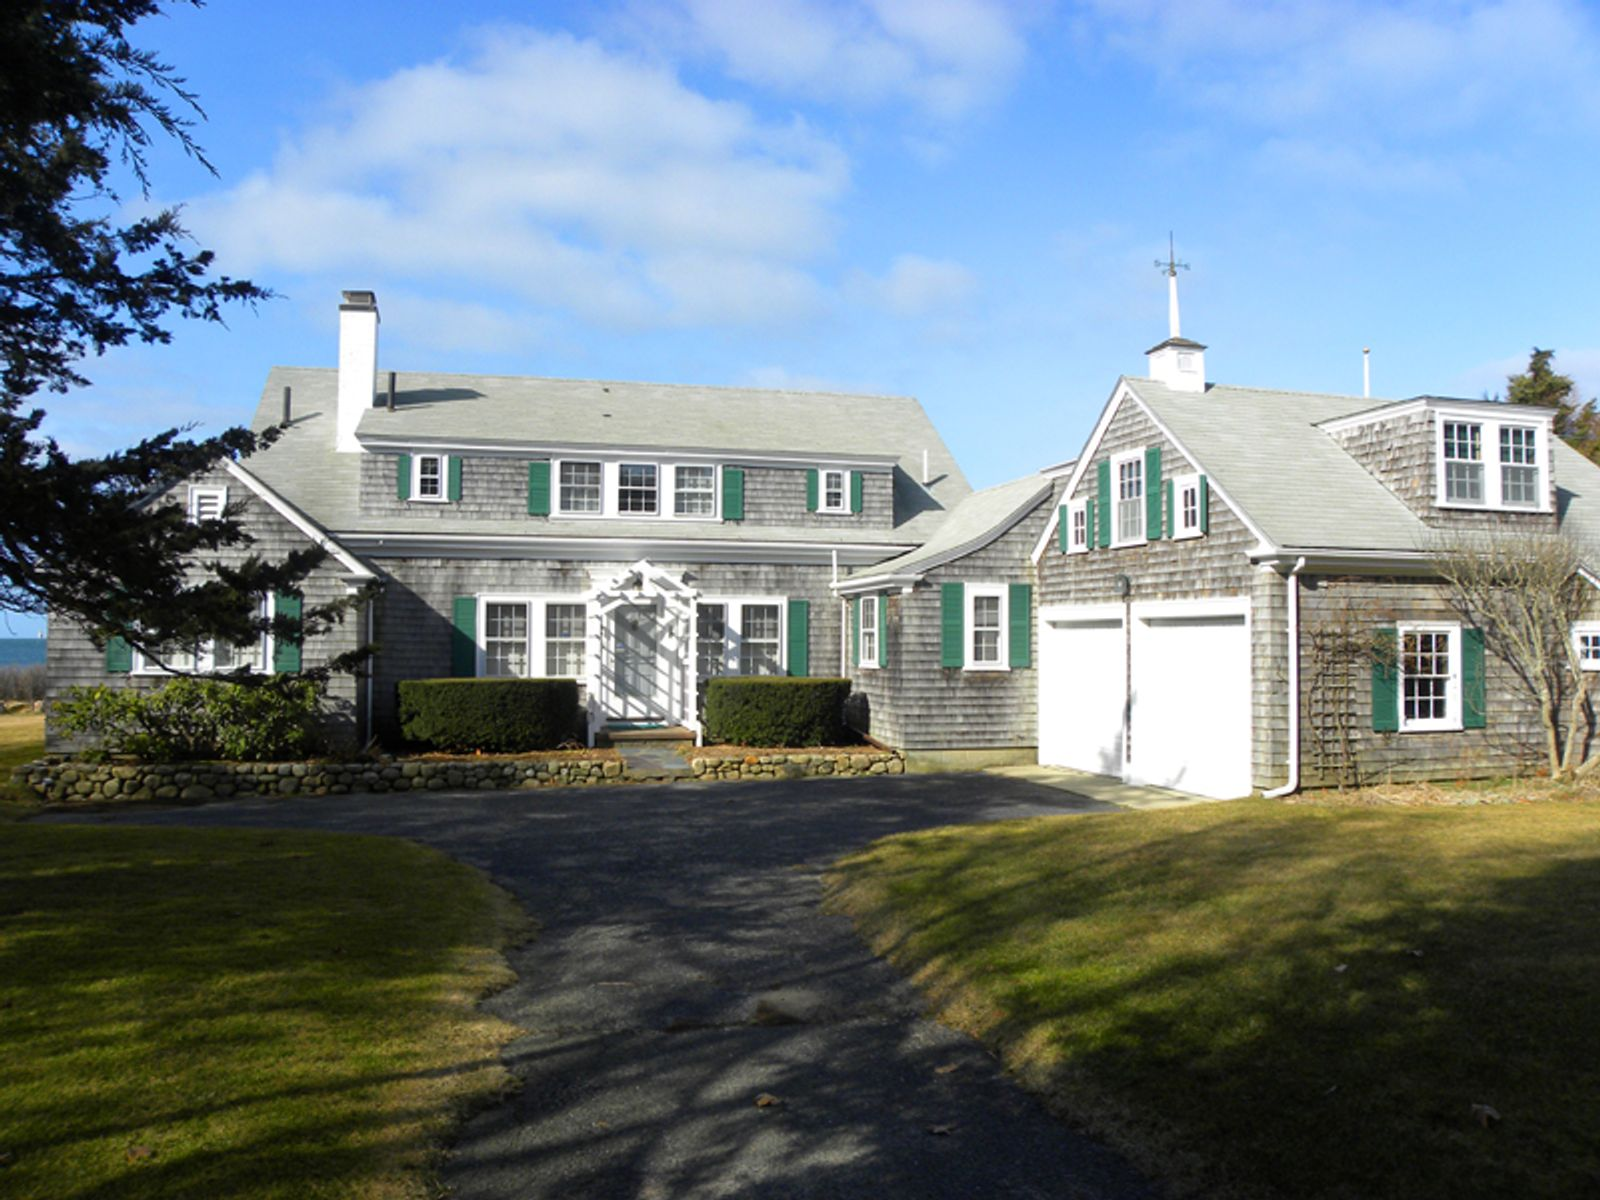 Buzzards Bay Oceanfront Cape, West Falmouth MA Single Family Home - Cape Cod Real Estate